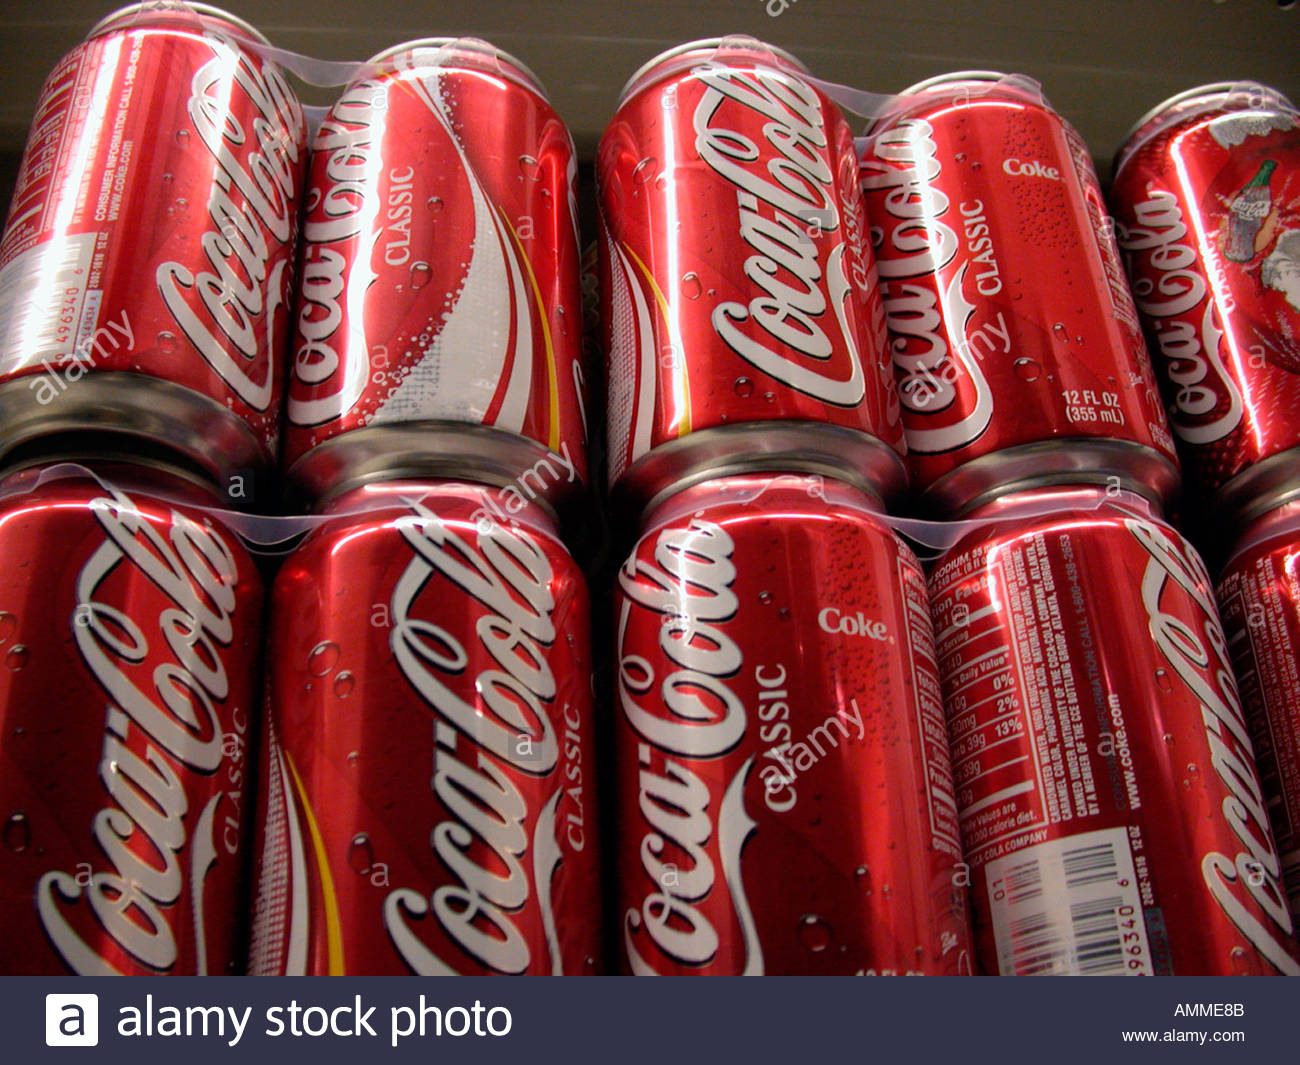 Best quality Coca cola-